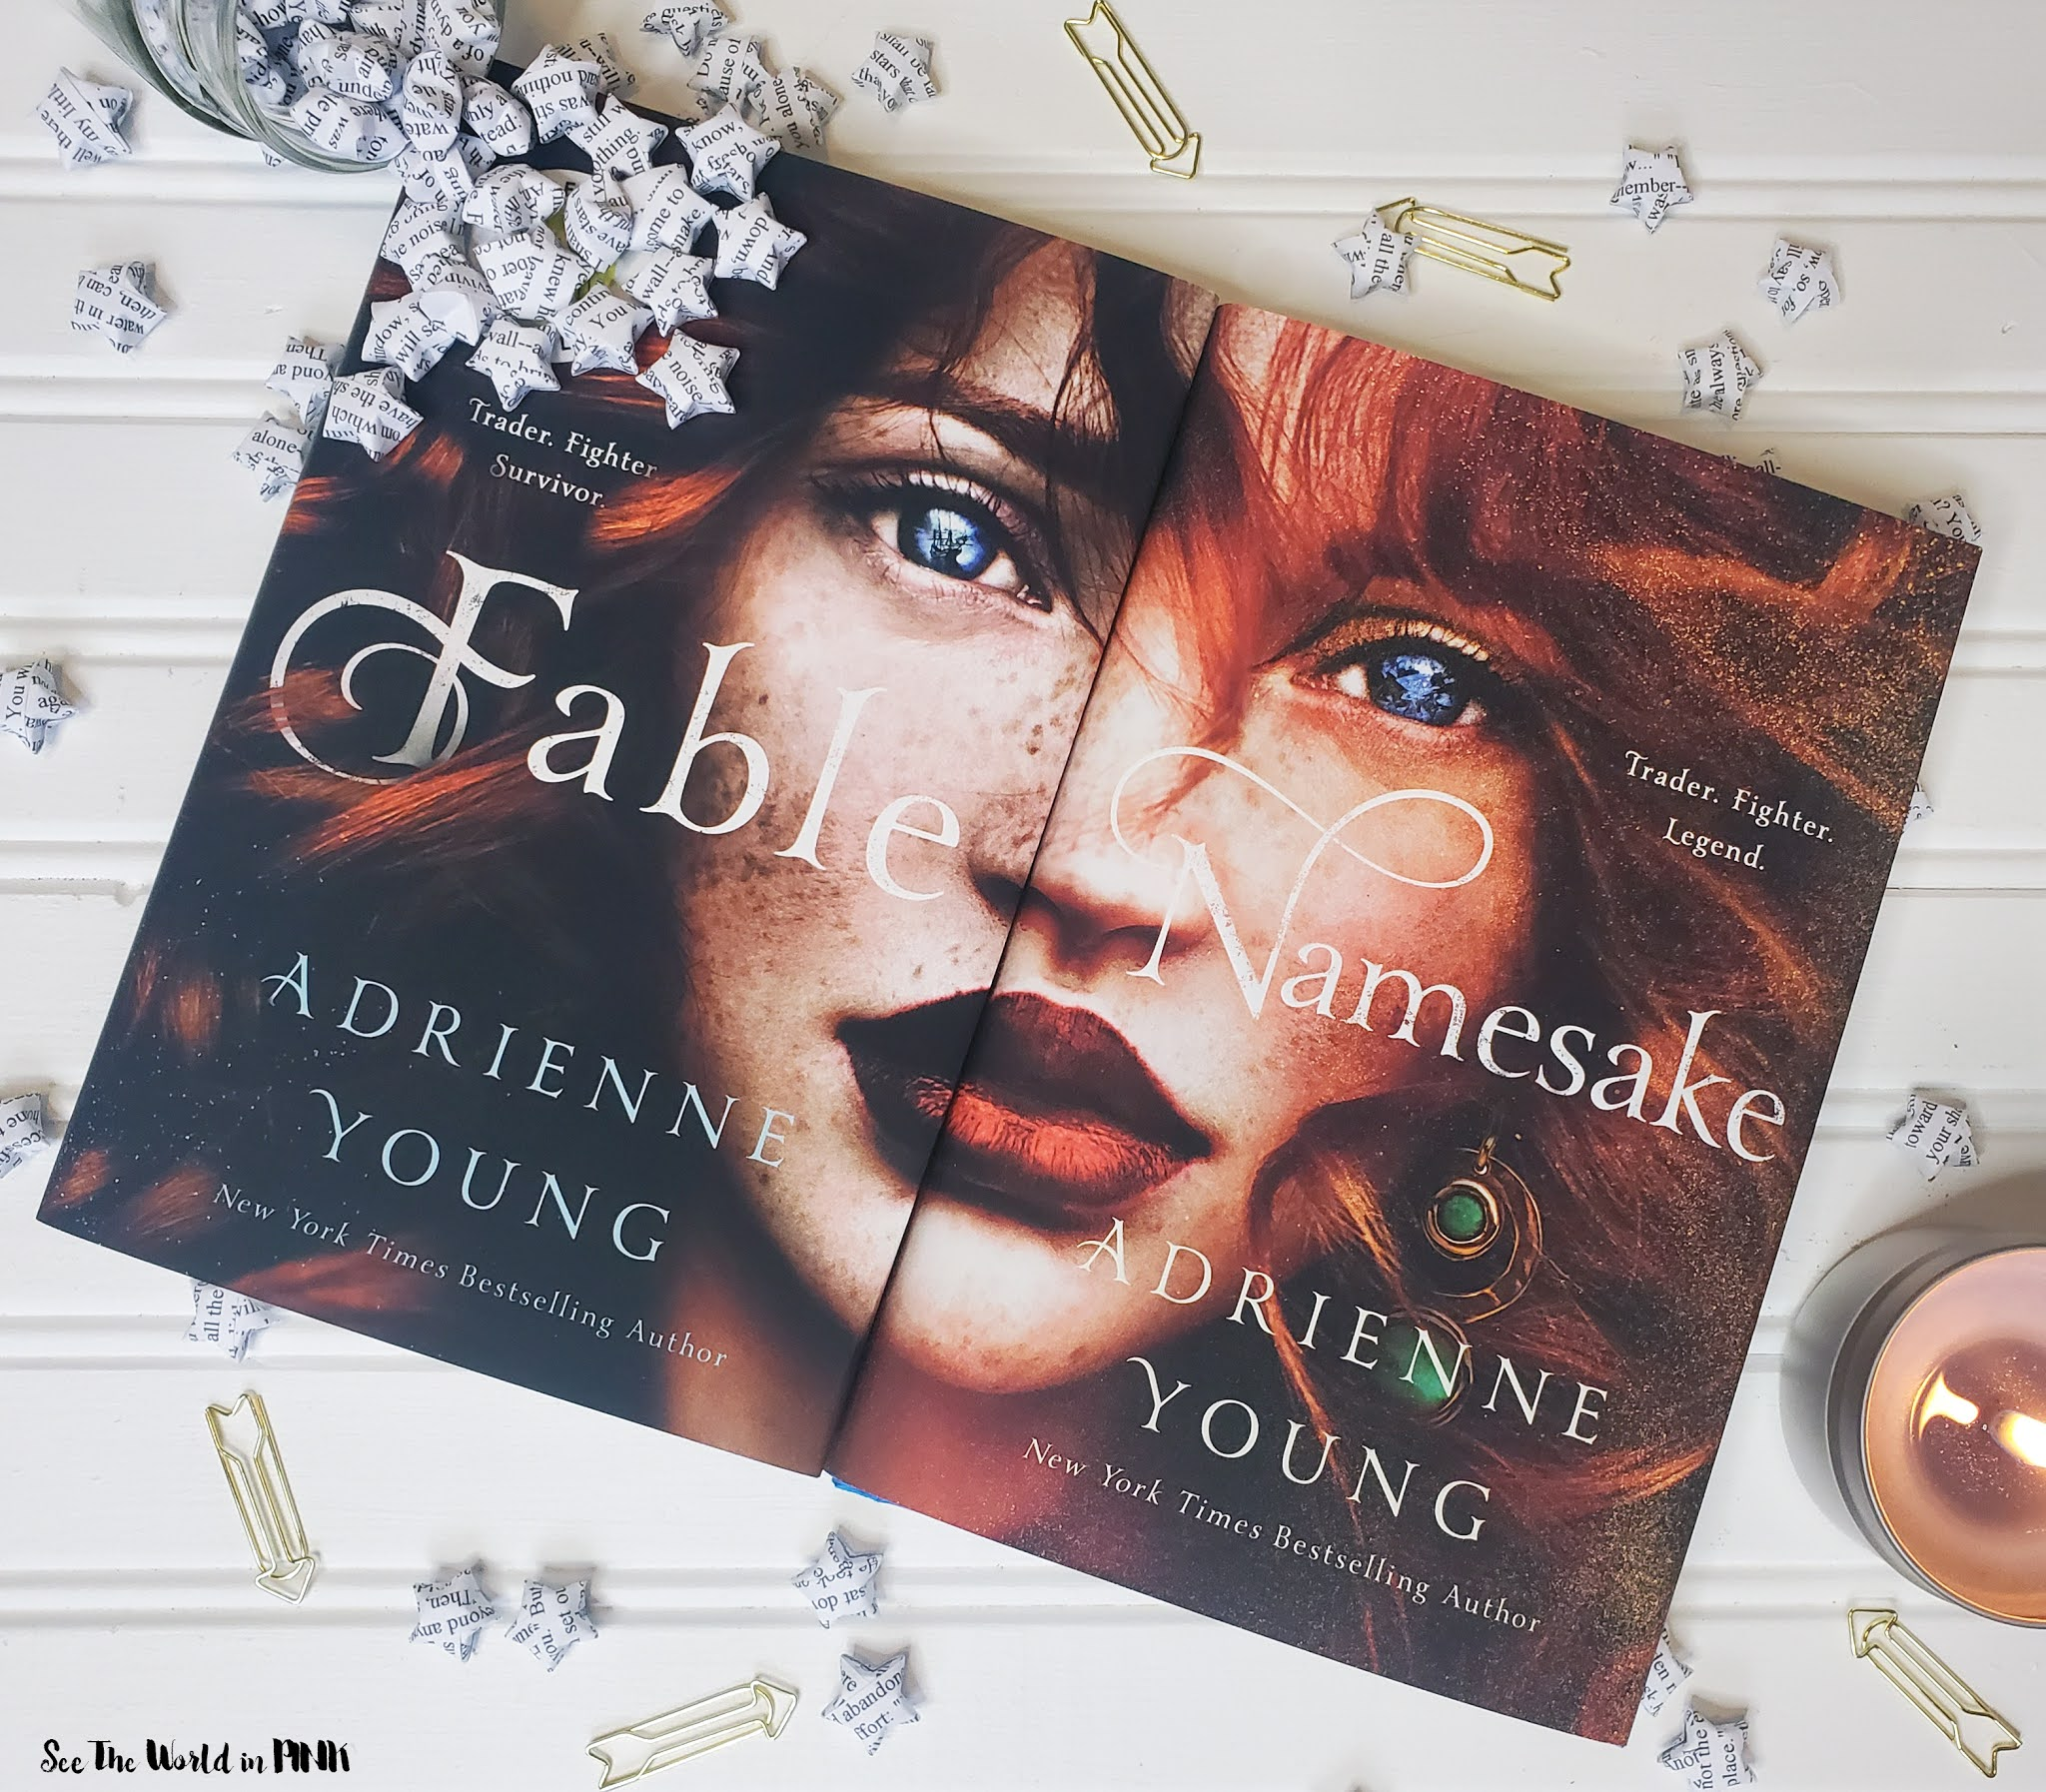 fable and namesake adrienne young